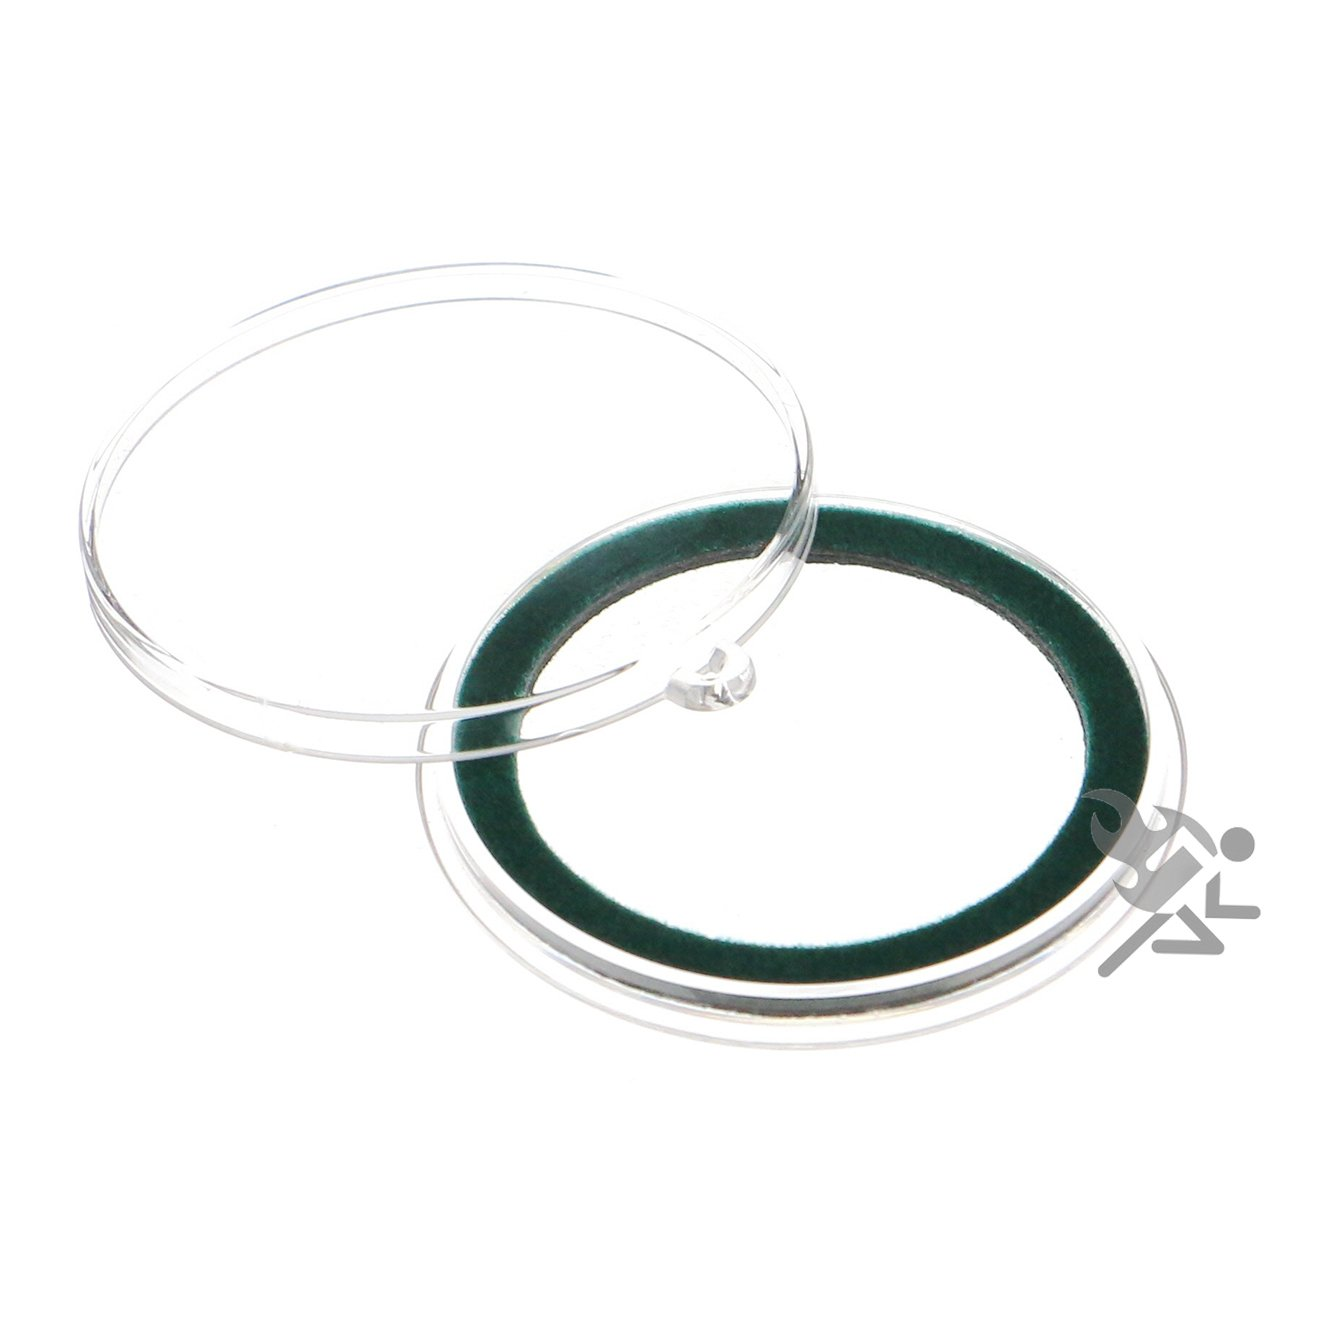 (25) Air-tite 39mm Green Velour Colored Ring Coin Holder Capsules with Loop Holders for 1oz Silver & Copper Rounds Casino Chips Air-Tite Holders